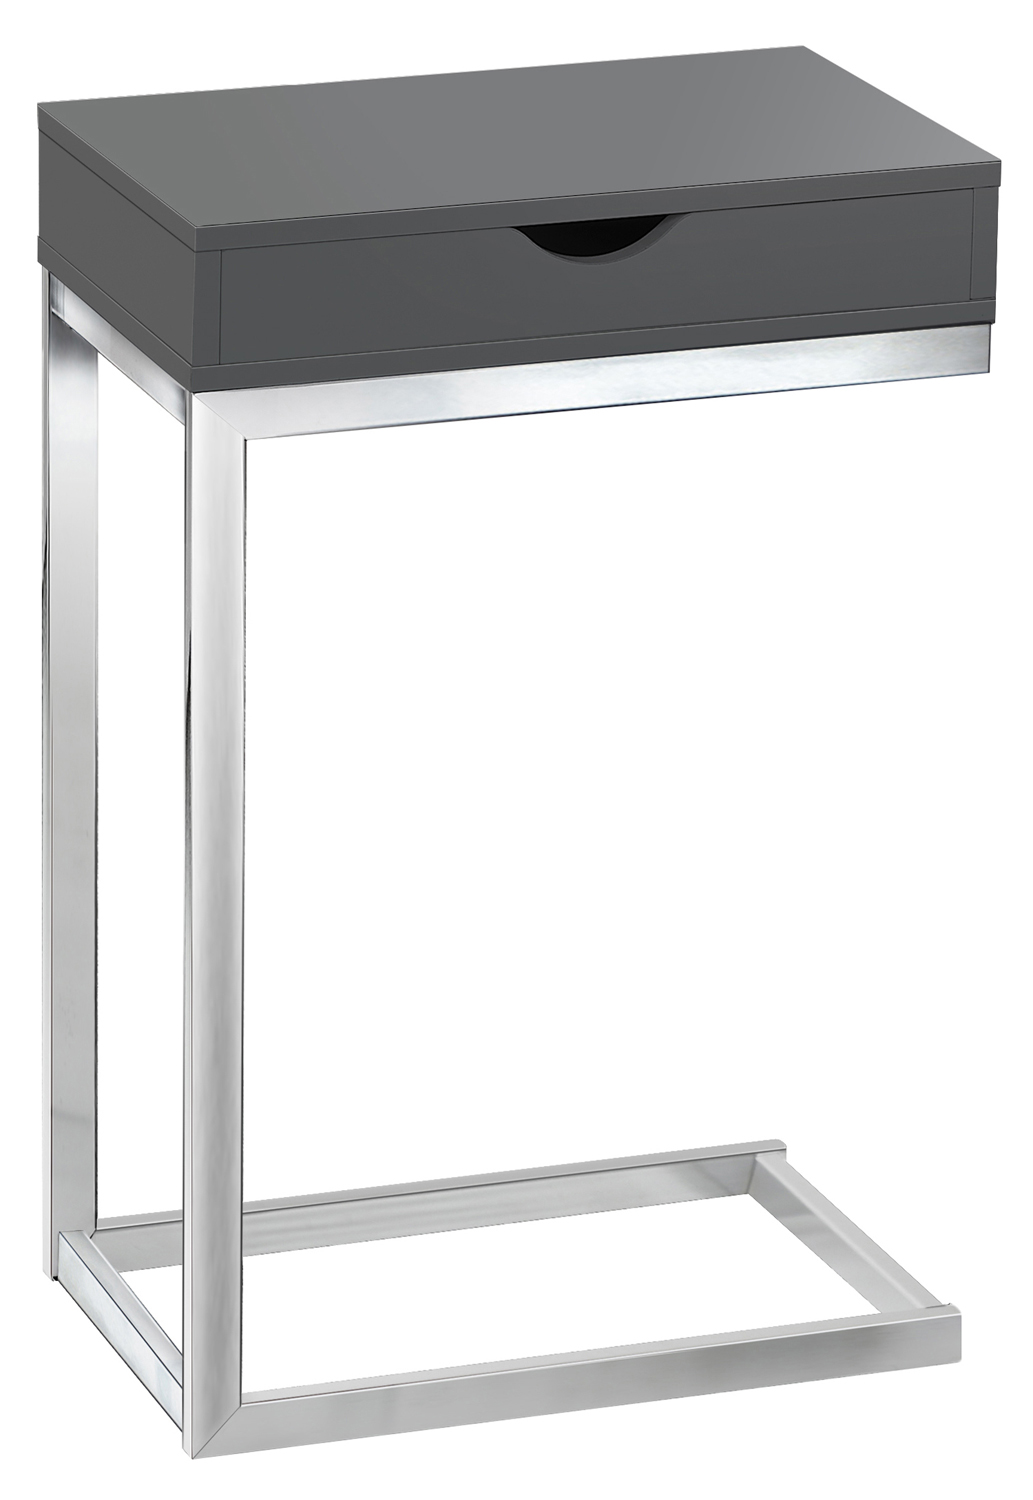 Accent Table - Glossy Grey Hollow-Core / Chrome Metal